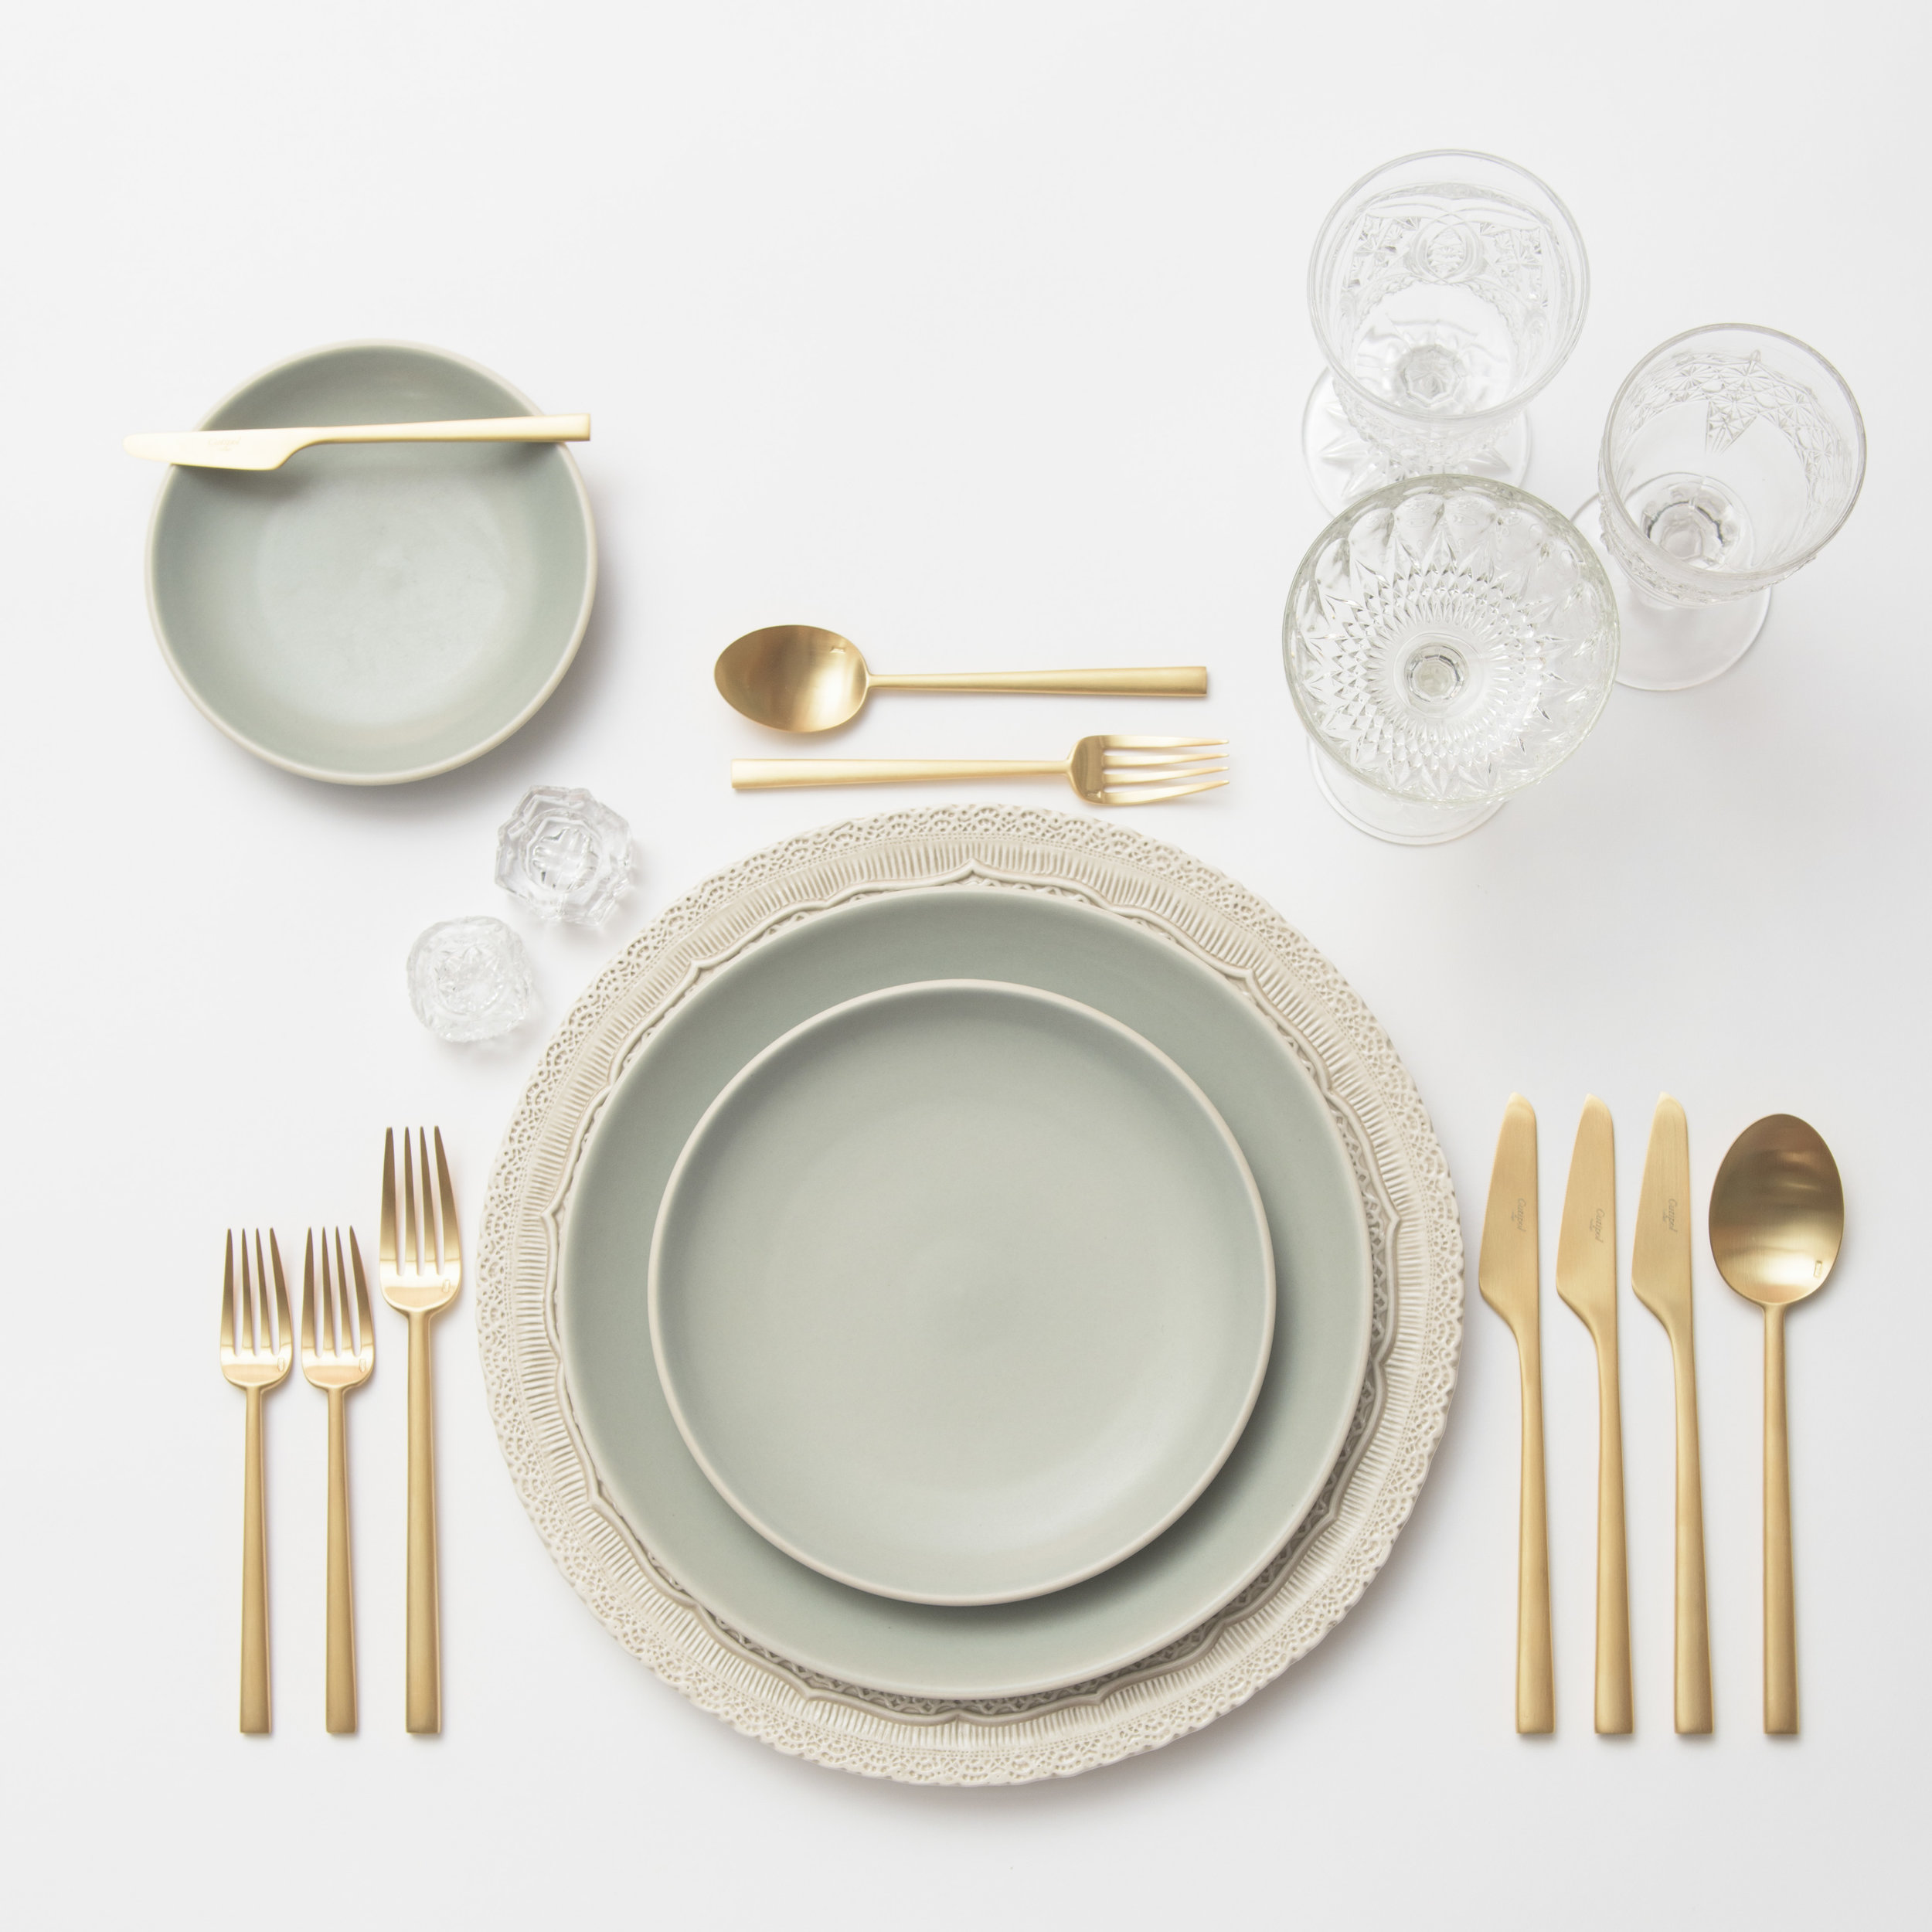 RENT: Lace Chargers in White + Heath Ceramics in Mist + Rondo Flatware in Brushed 24k Gold + Early American Pressed Glass Goblets + Antique Crystal Salt Cellars  SHOP:Rondo Flatware in Brushed 24k Gold